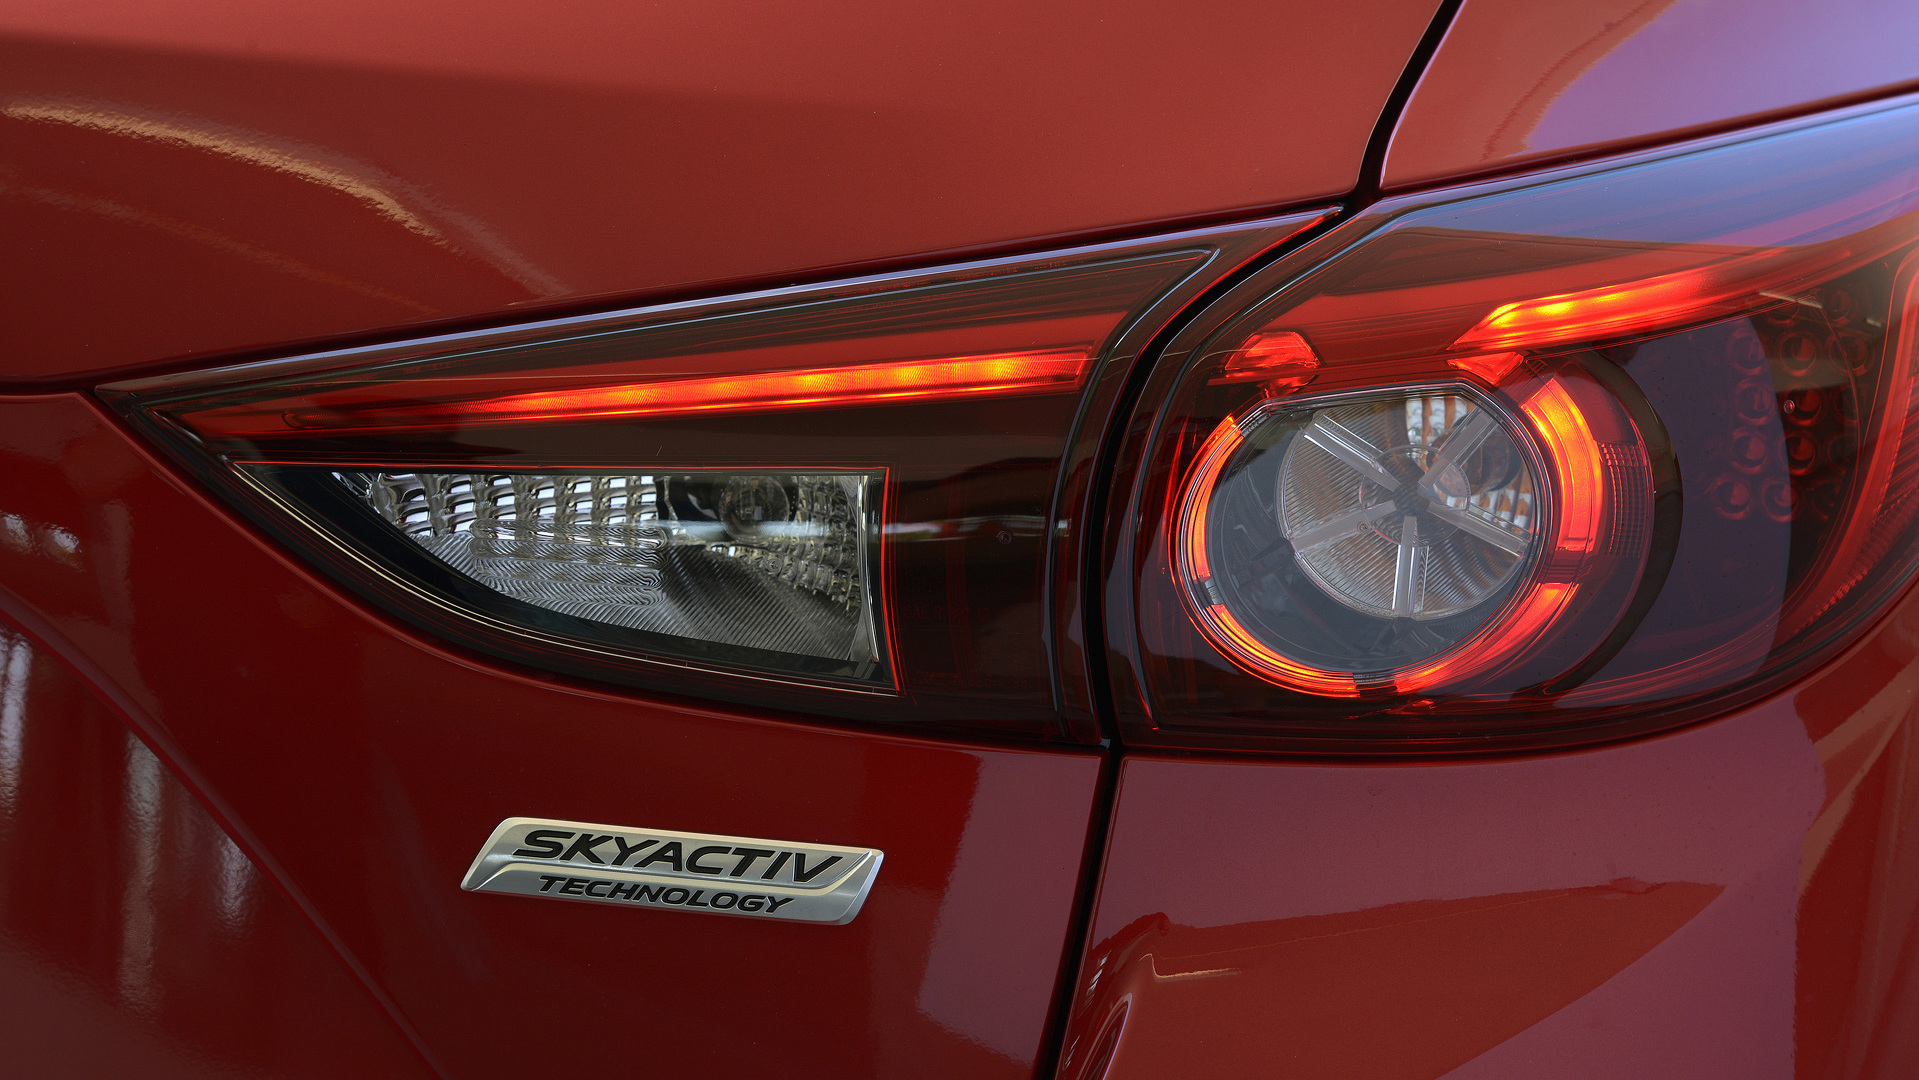 Mazda Prepping Super Efficient Combustion Engine Tech For Late 2018